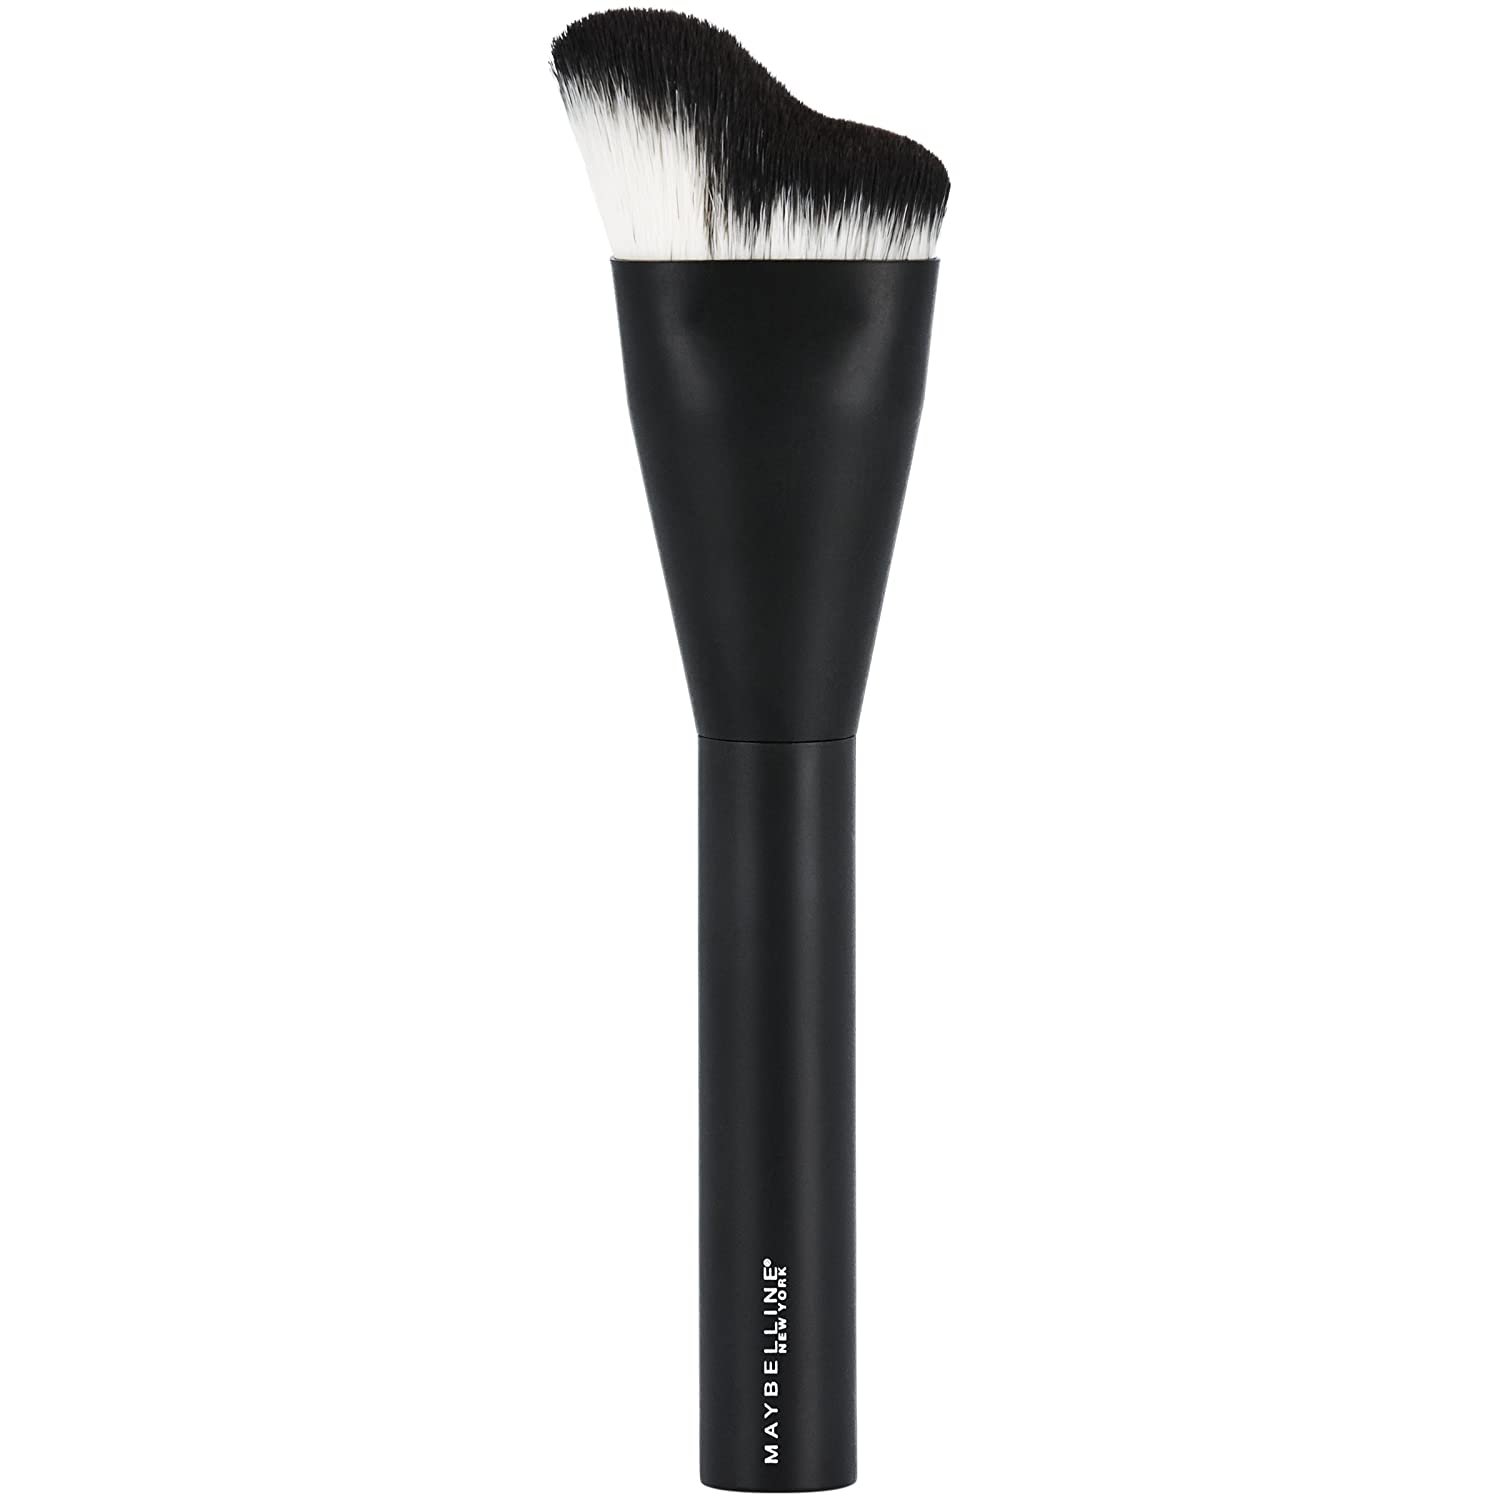 WHOLESALE MAYBELLINE FACESTUDIO CONTOUR BRUSH 120 - 48 PIECE LOT